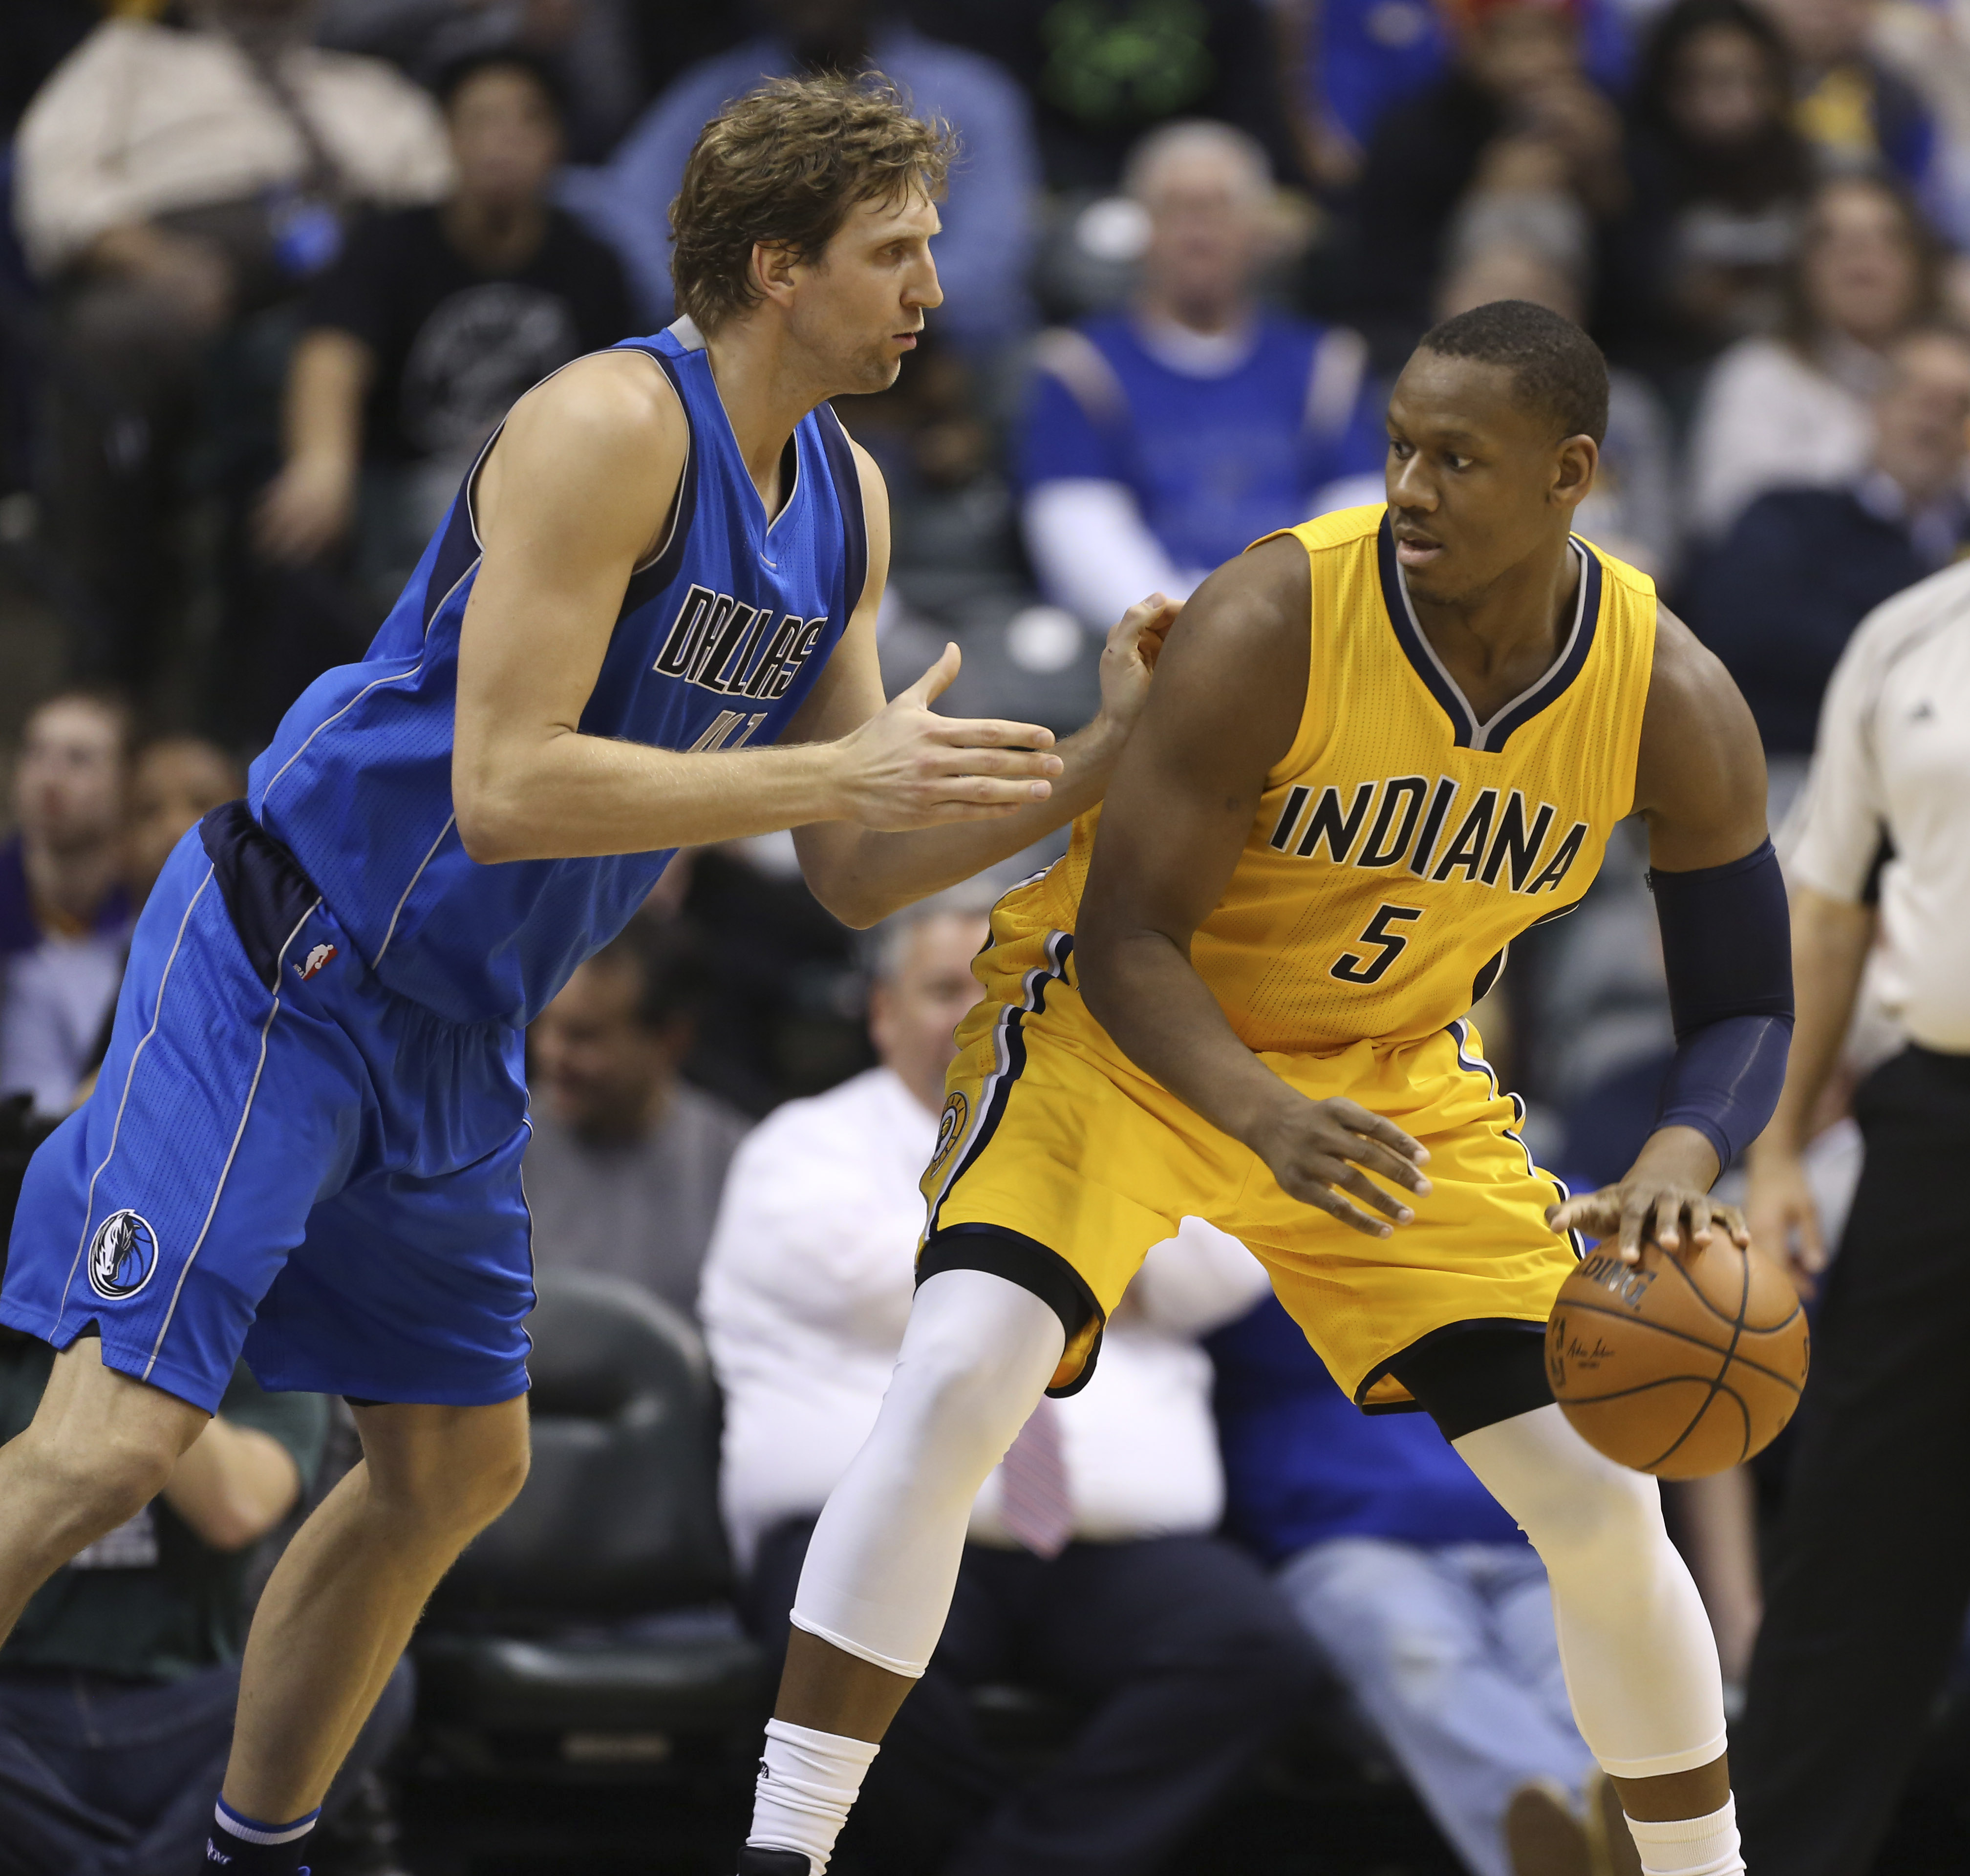 9000635-nba-dallas-mavericks-at-indiana-pacers